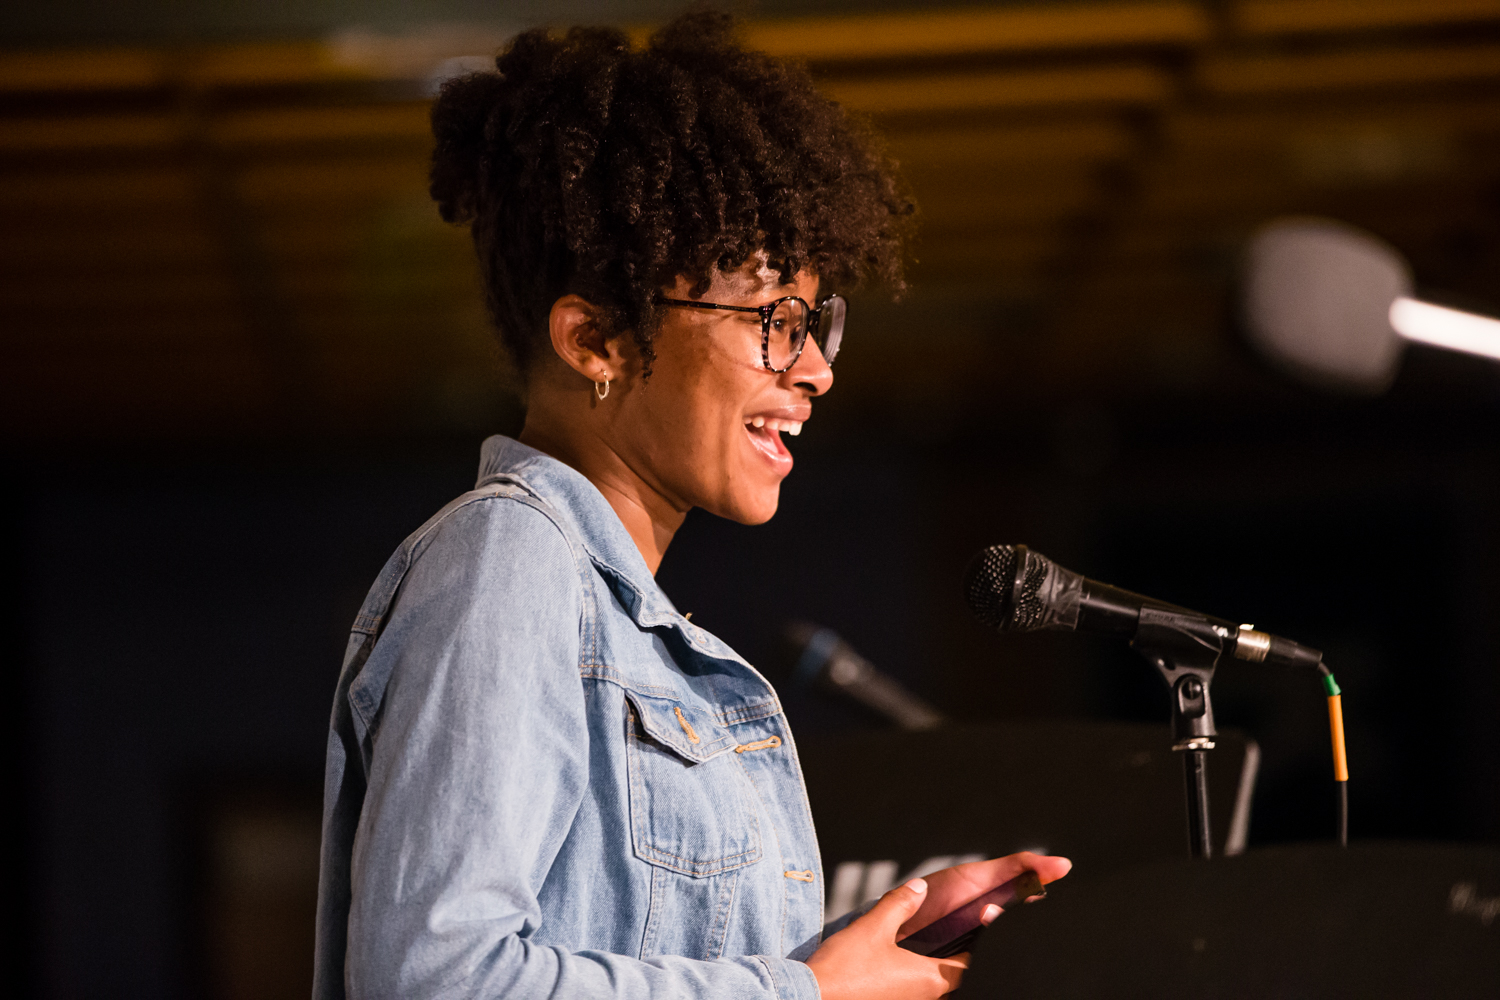 NKU's annual Open Mic Night took place in the Multi-purpose room this year.